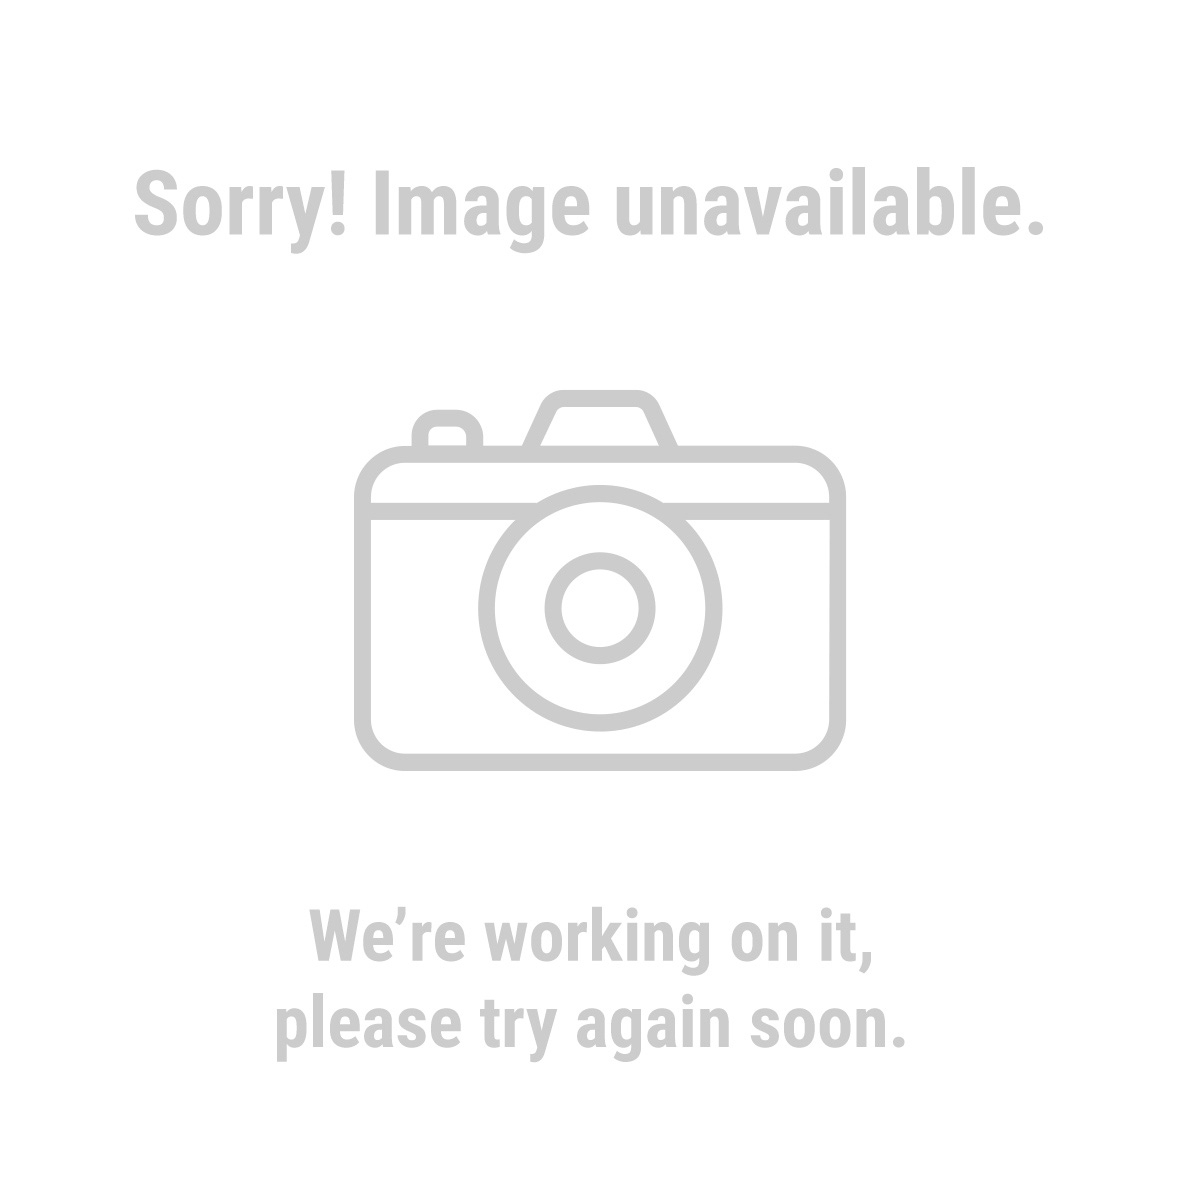 65528 Set of 2 Magnetic Decor Hooks